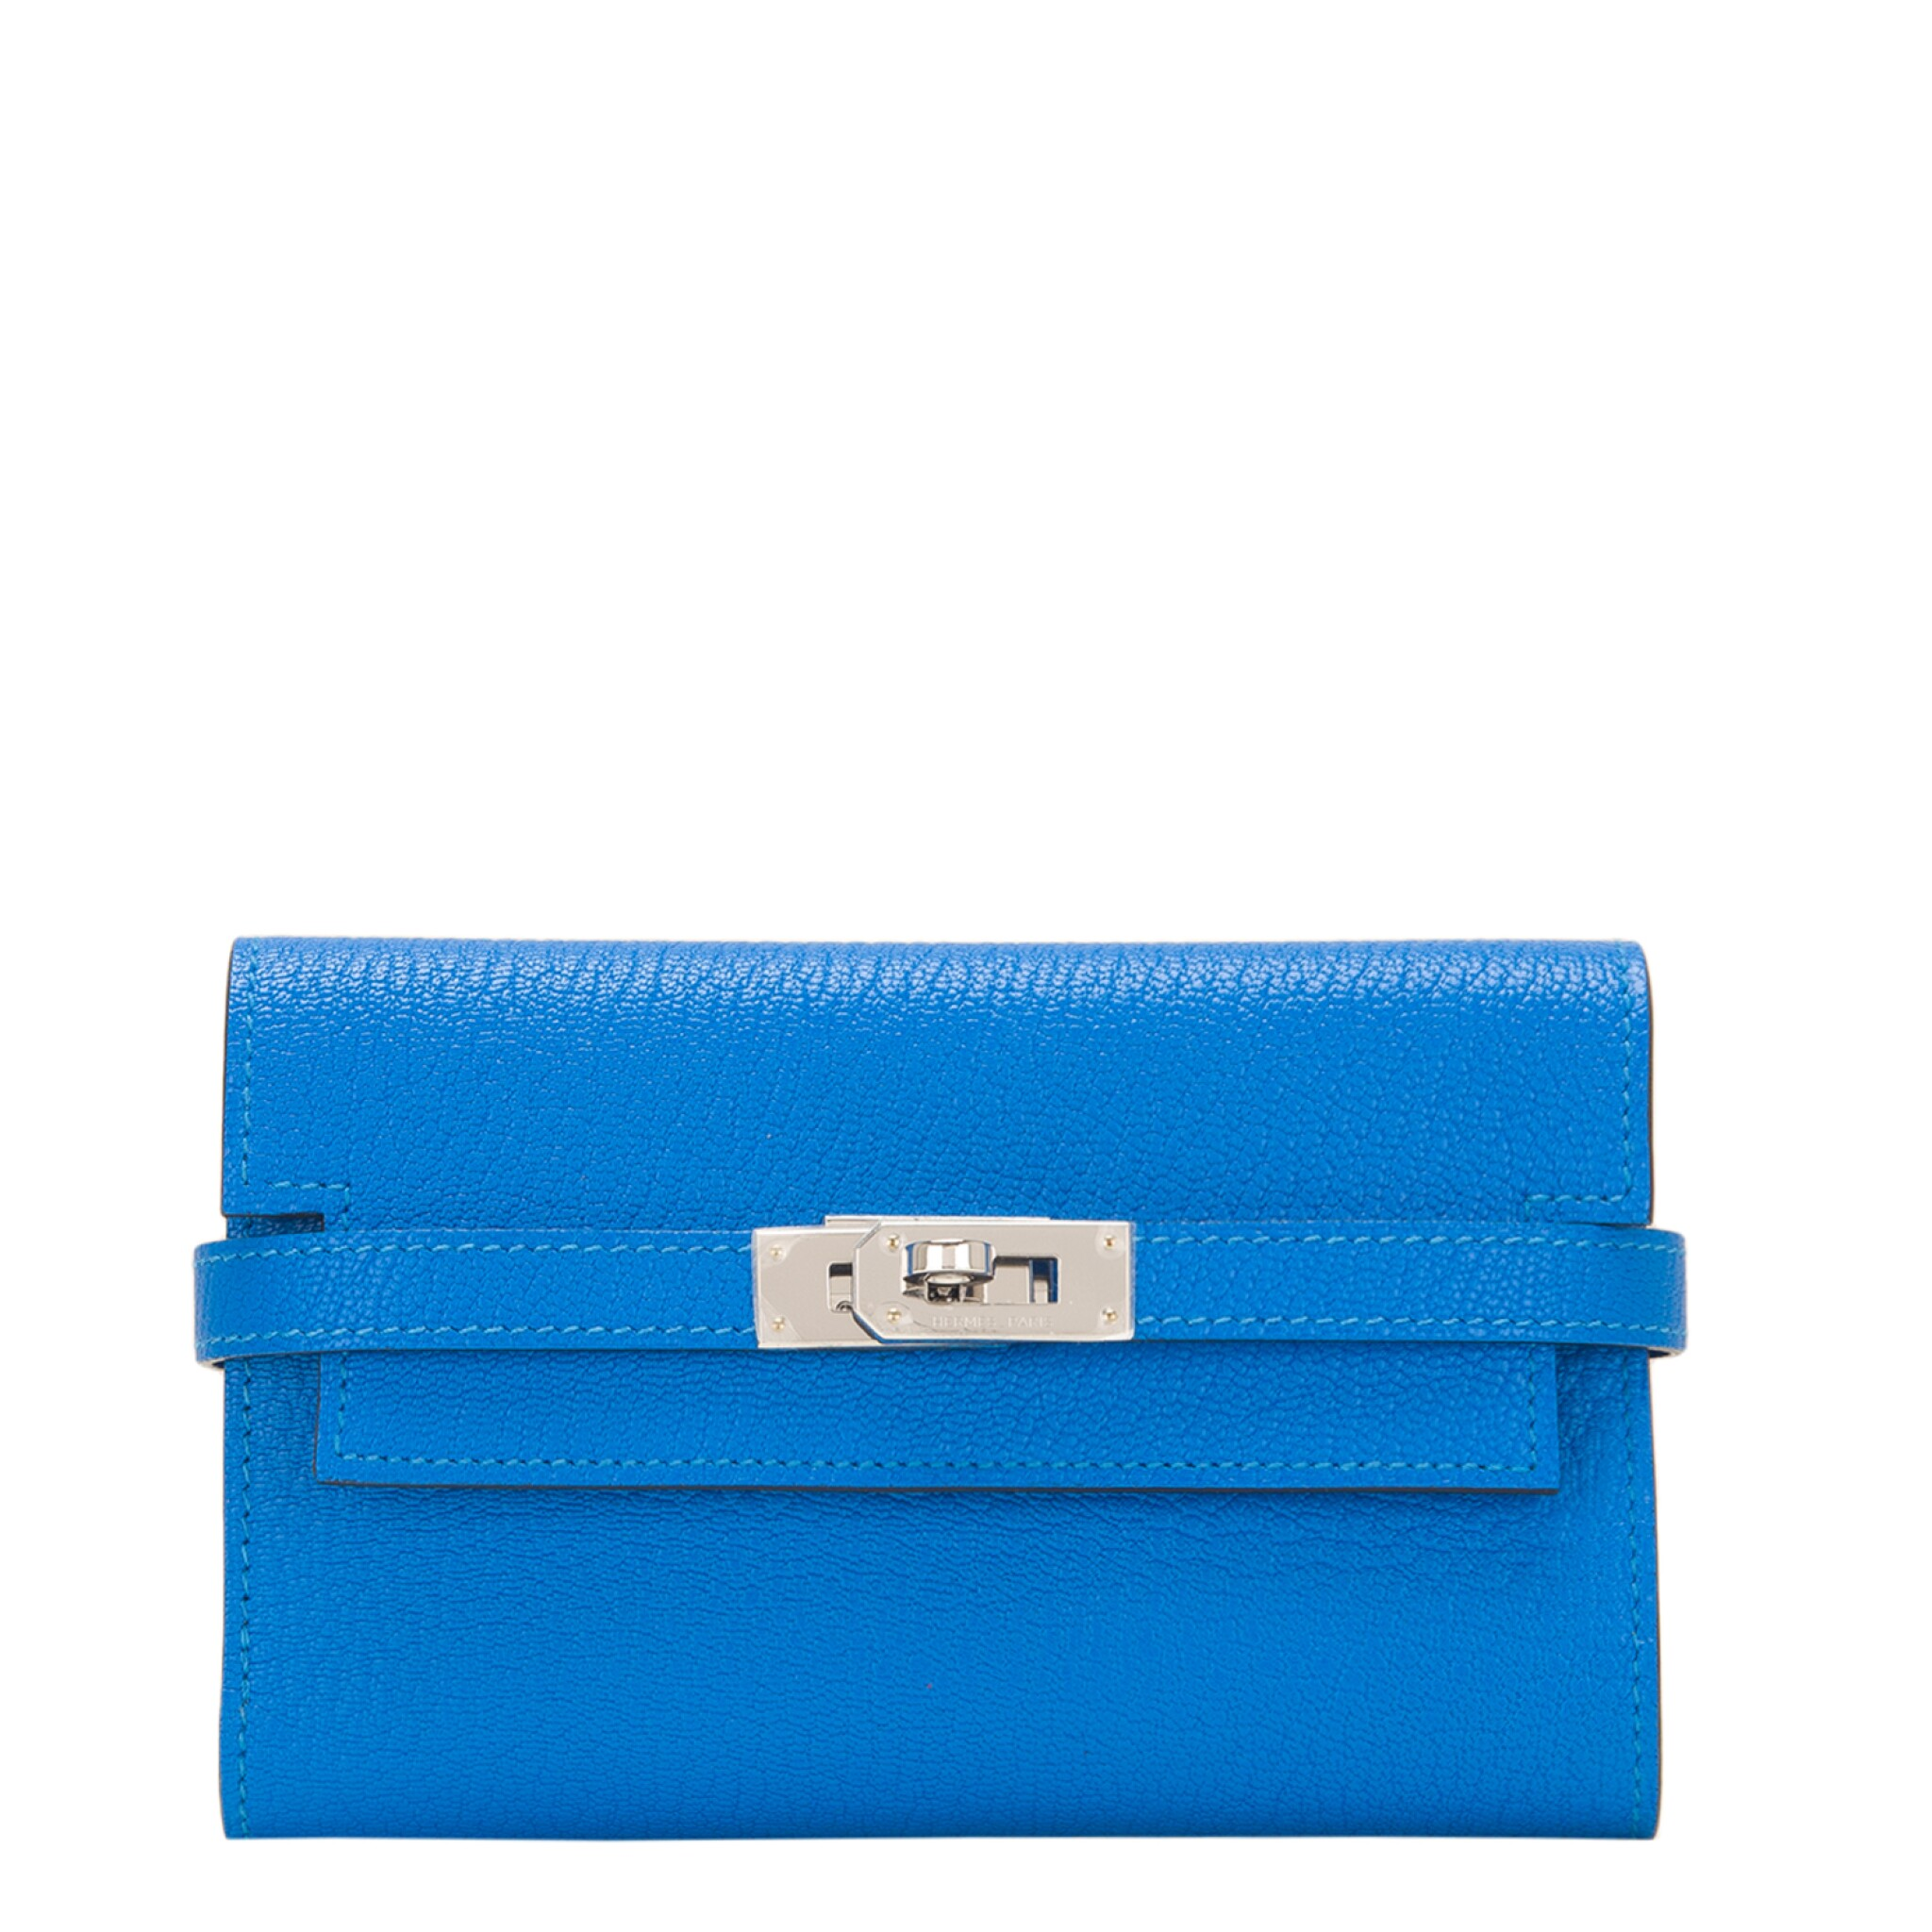 View 1 of Lot 13. Hermès Bleu Hydra Kelly Depliant Medium Wallet of Chevre Leather with Palladium Hardware.